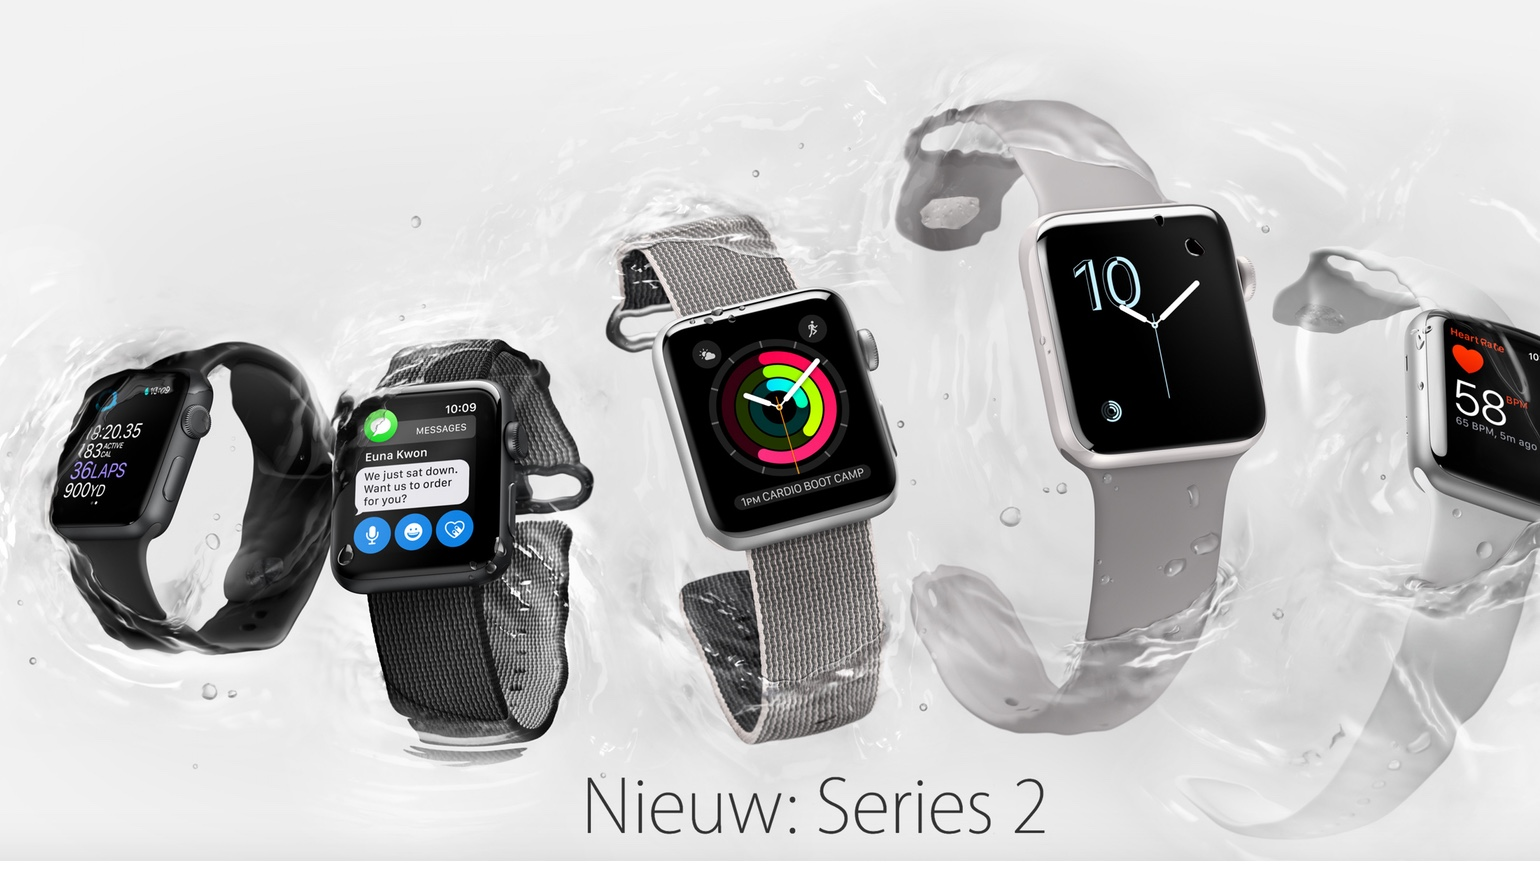 Apple geeft een update voor Apple Watch vrij: watchOS 3.1.3